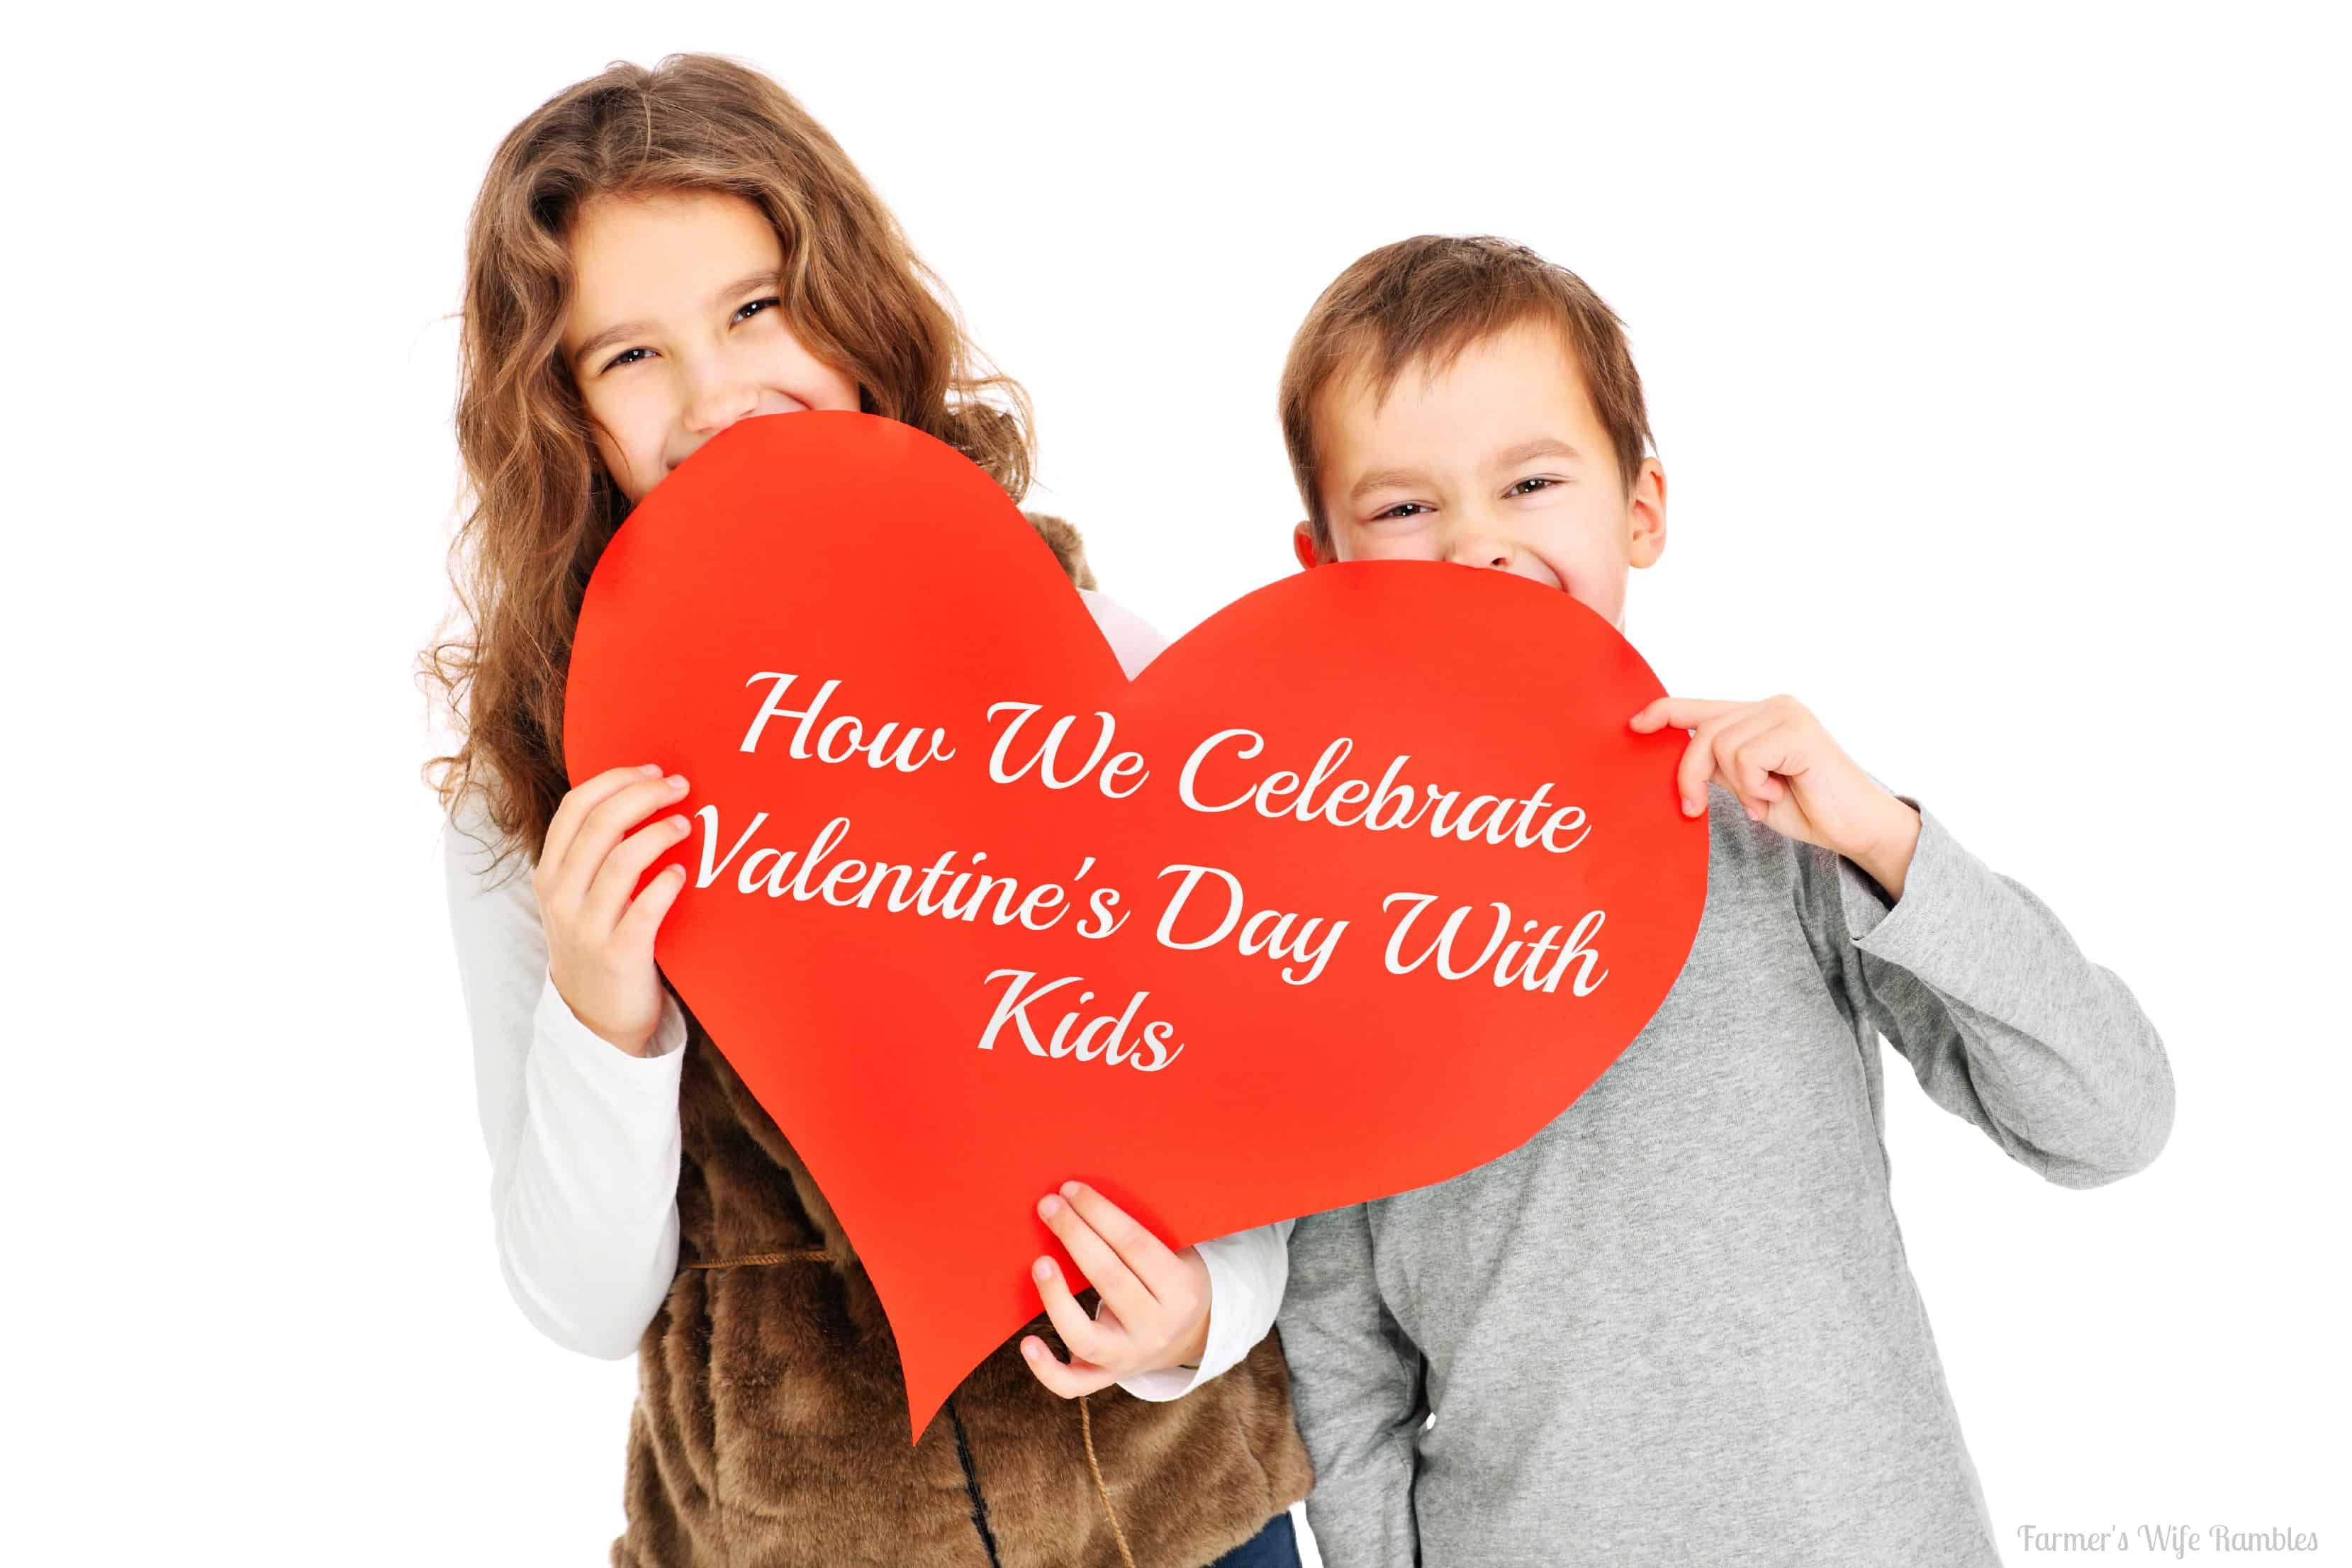 how we celebrate valentines day with kids